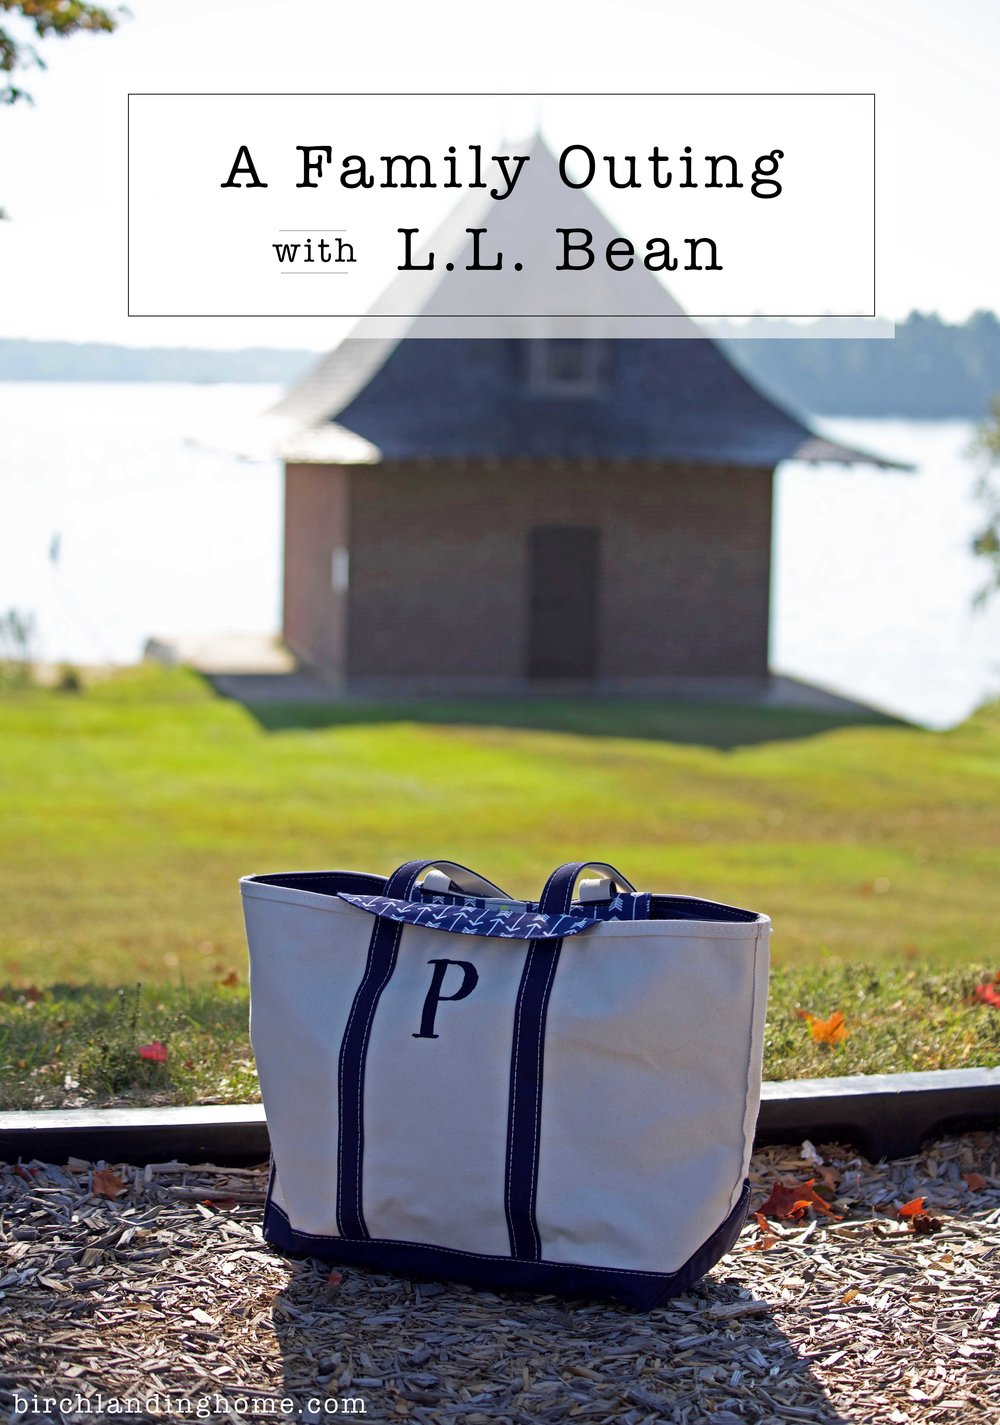 A Family Outing with L.L. Bean - L.L. Bean Diaper Tote Insert and Boat Tote Bag